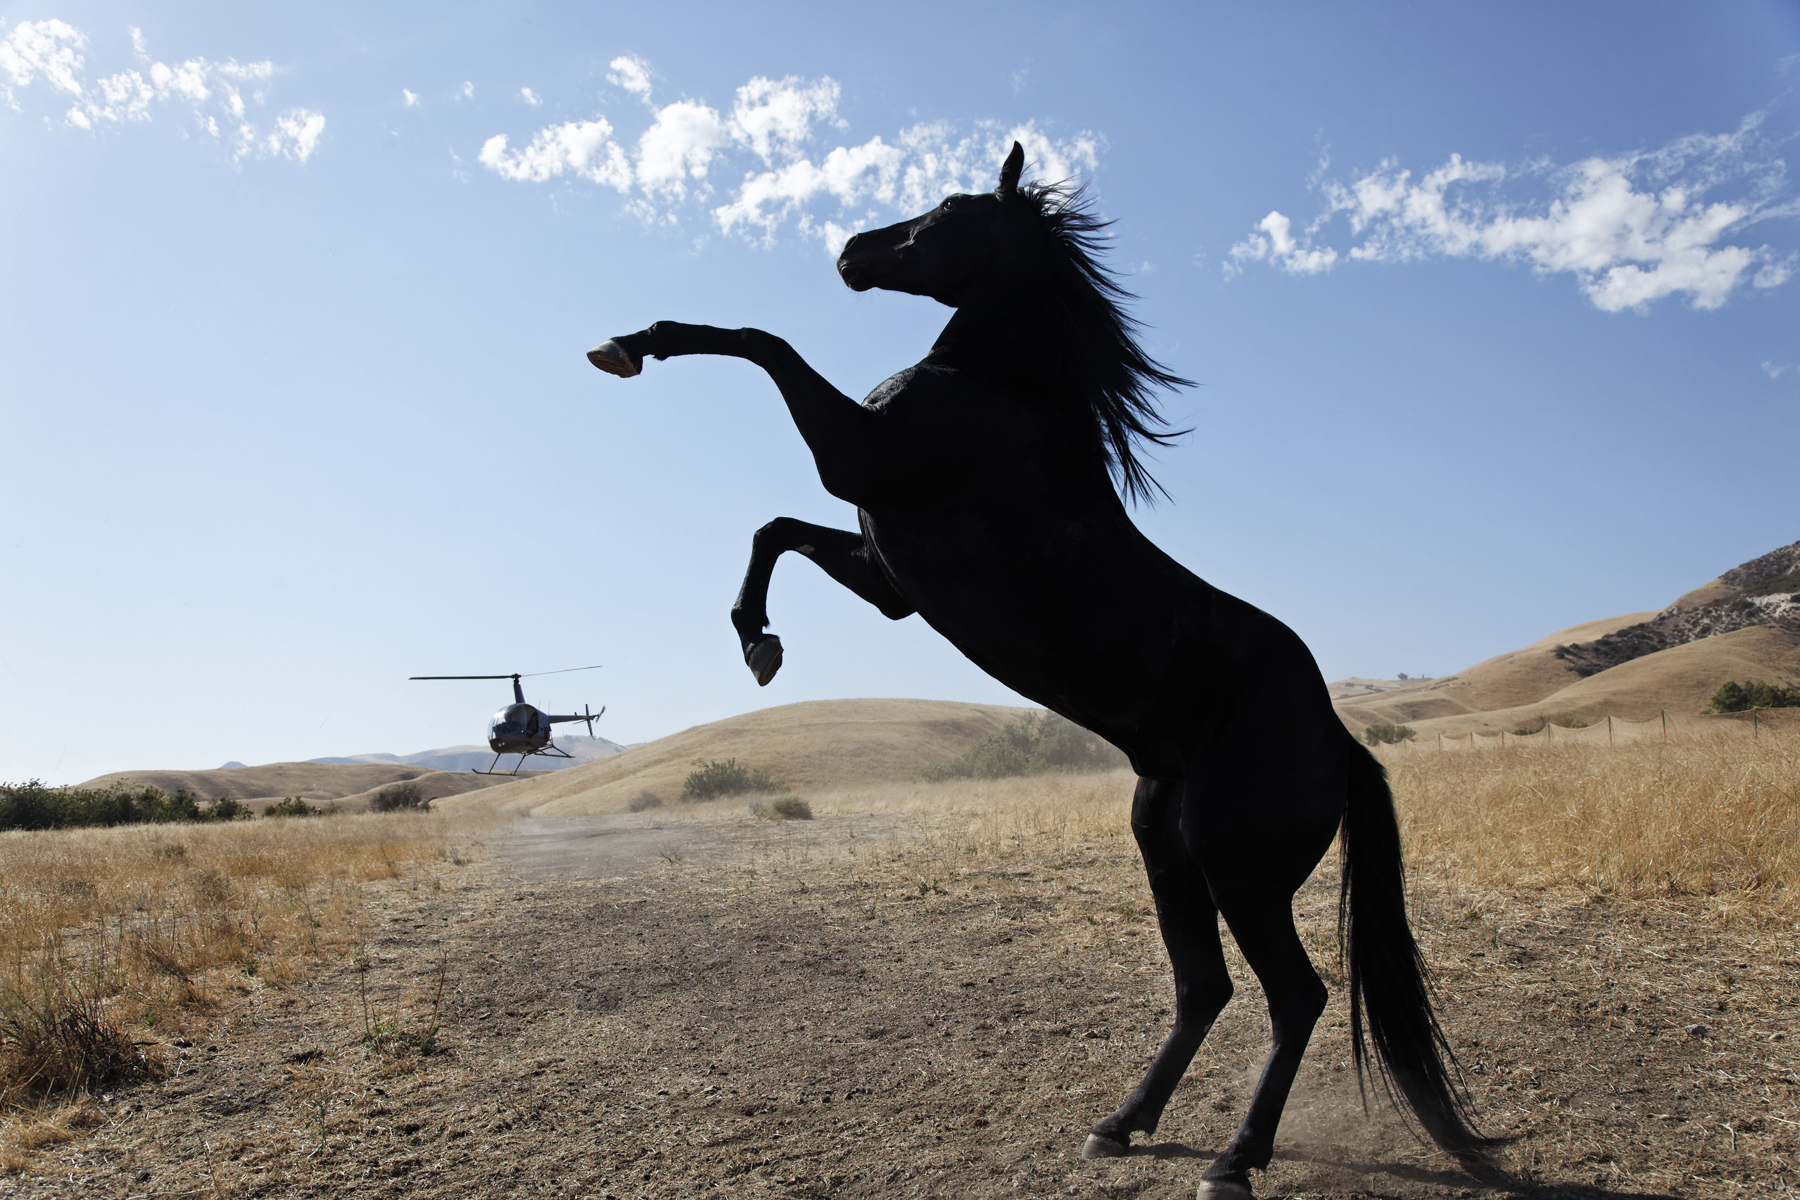 Wild Horses tells the story of Mills, an established photographer, who returns to her native Nevada following an urgent call from her grandmother informing her that a band of wild horses close to their hearts, faces government roundup.  Cruelty, courage, love and memory collide as two generations of women bear witness to the brutality common to wild horse roundups in the American West.  In this story, that spans one day, Mills is exposed to a complex issue and follows hear heart, choosing to ignore the consequences.